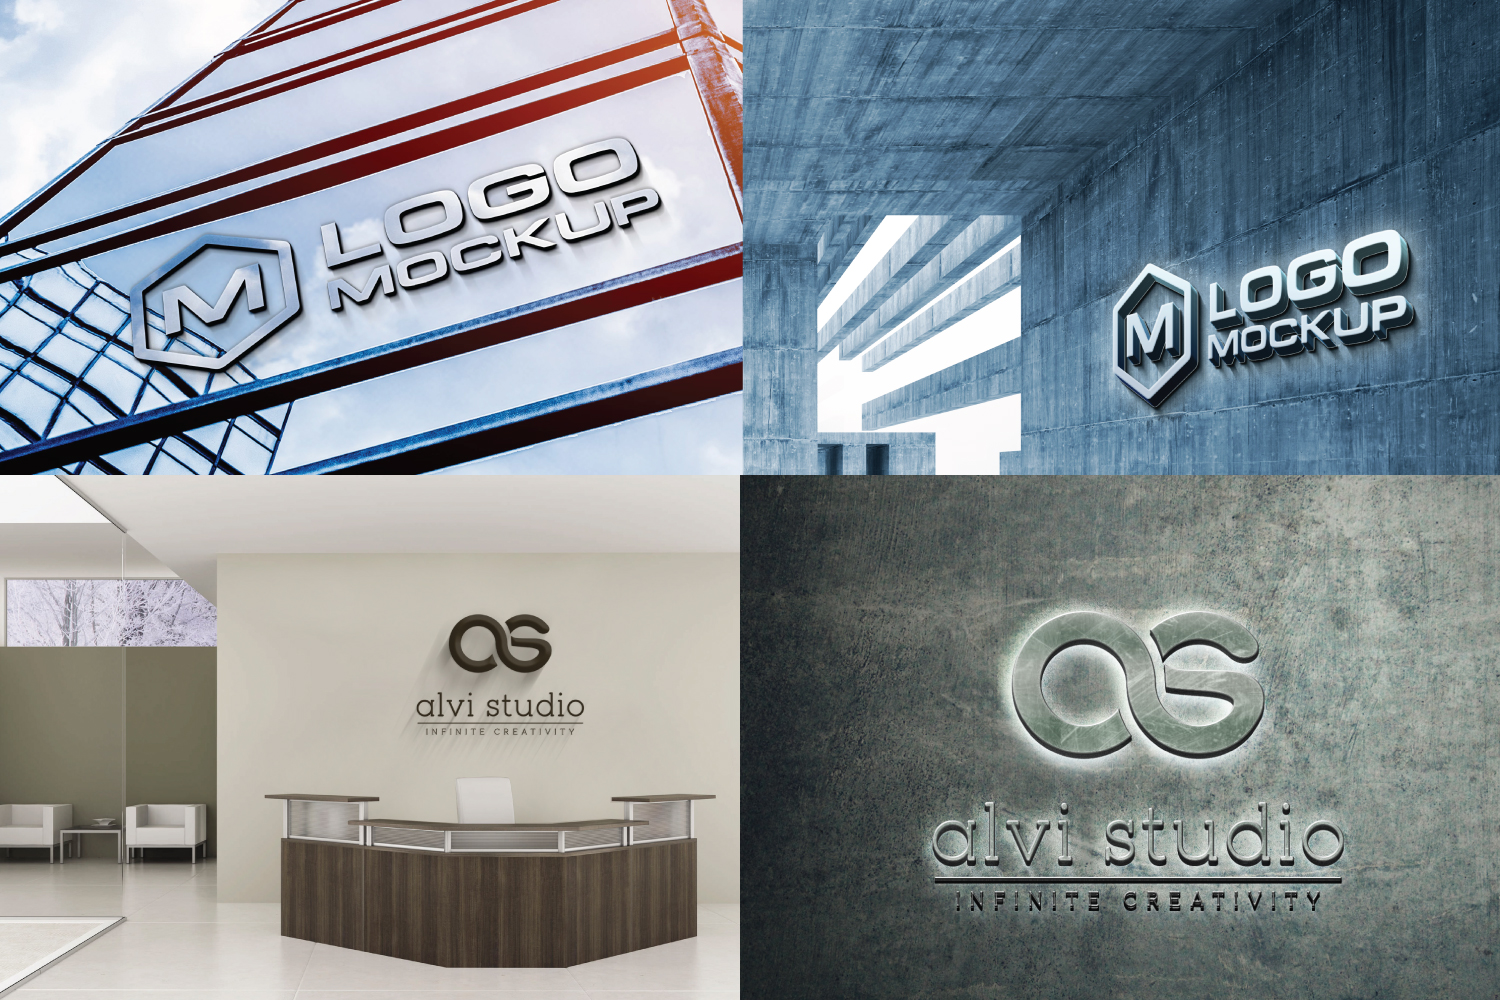 8 3d wall logo mock up example image 2